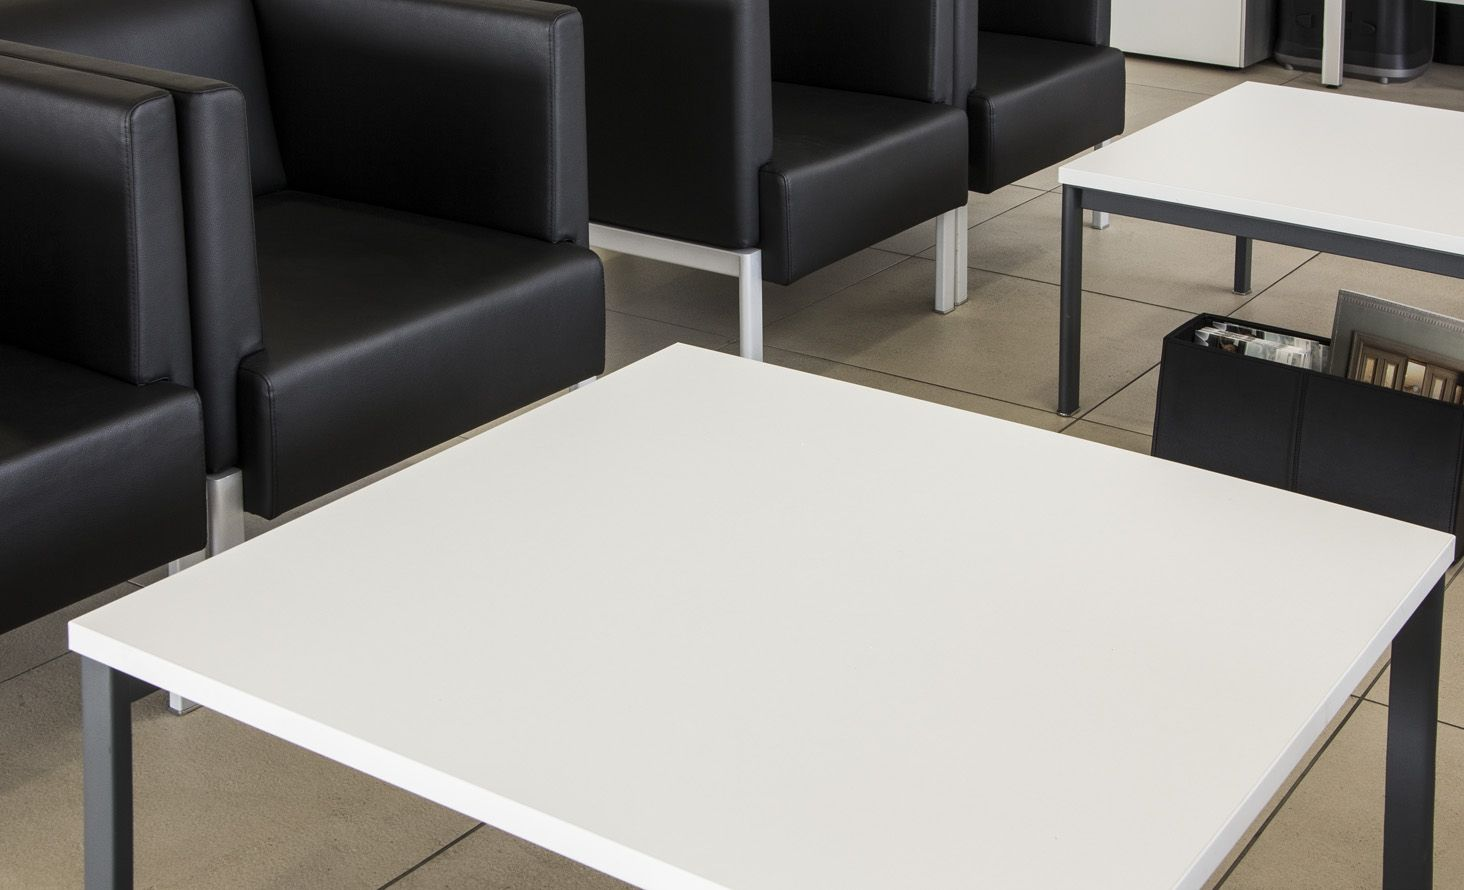 NOTI table | ALTER collection | design by Piotr Kuchcinski | office | hotel | reception | furniture | minimalistic